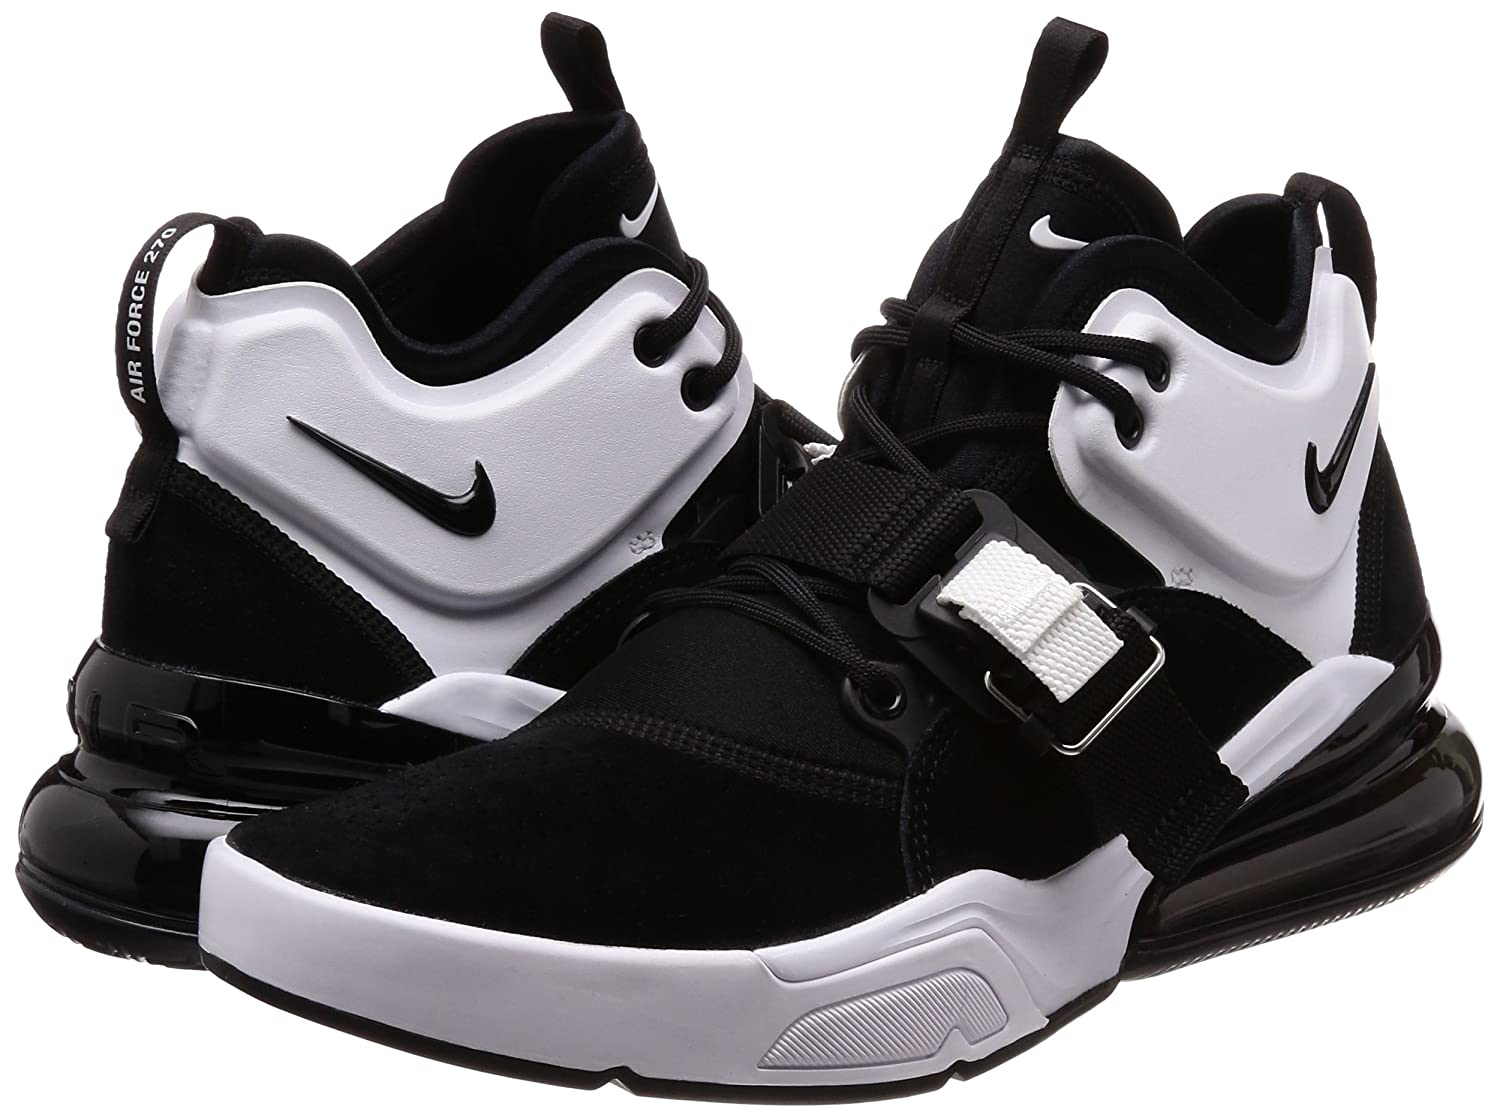 info for 814d8 1e3ee Amazon.com   NIKE Air Force 270 Men s Running Shoes Black White ah6772-006    Shoes